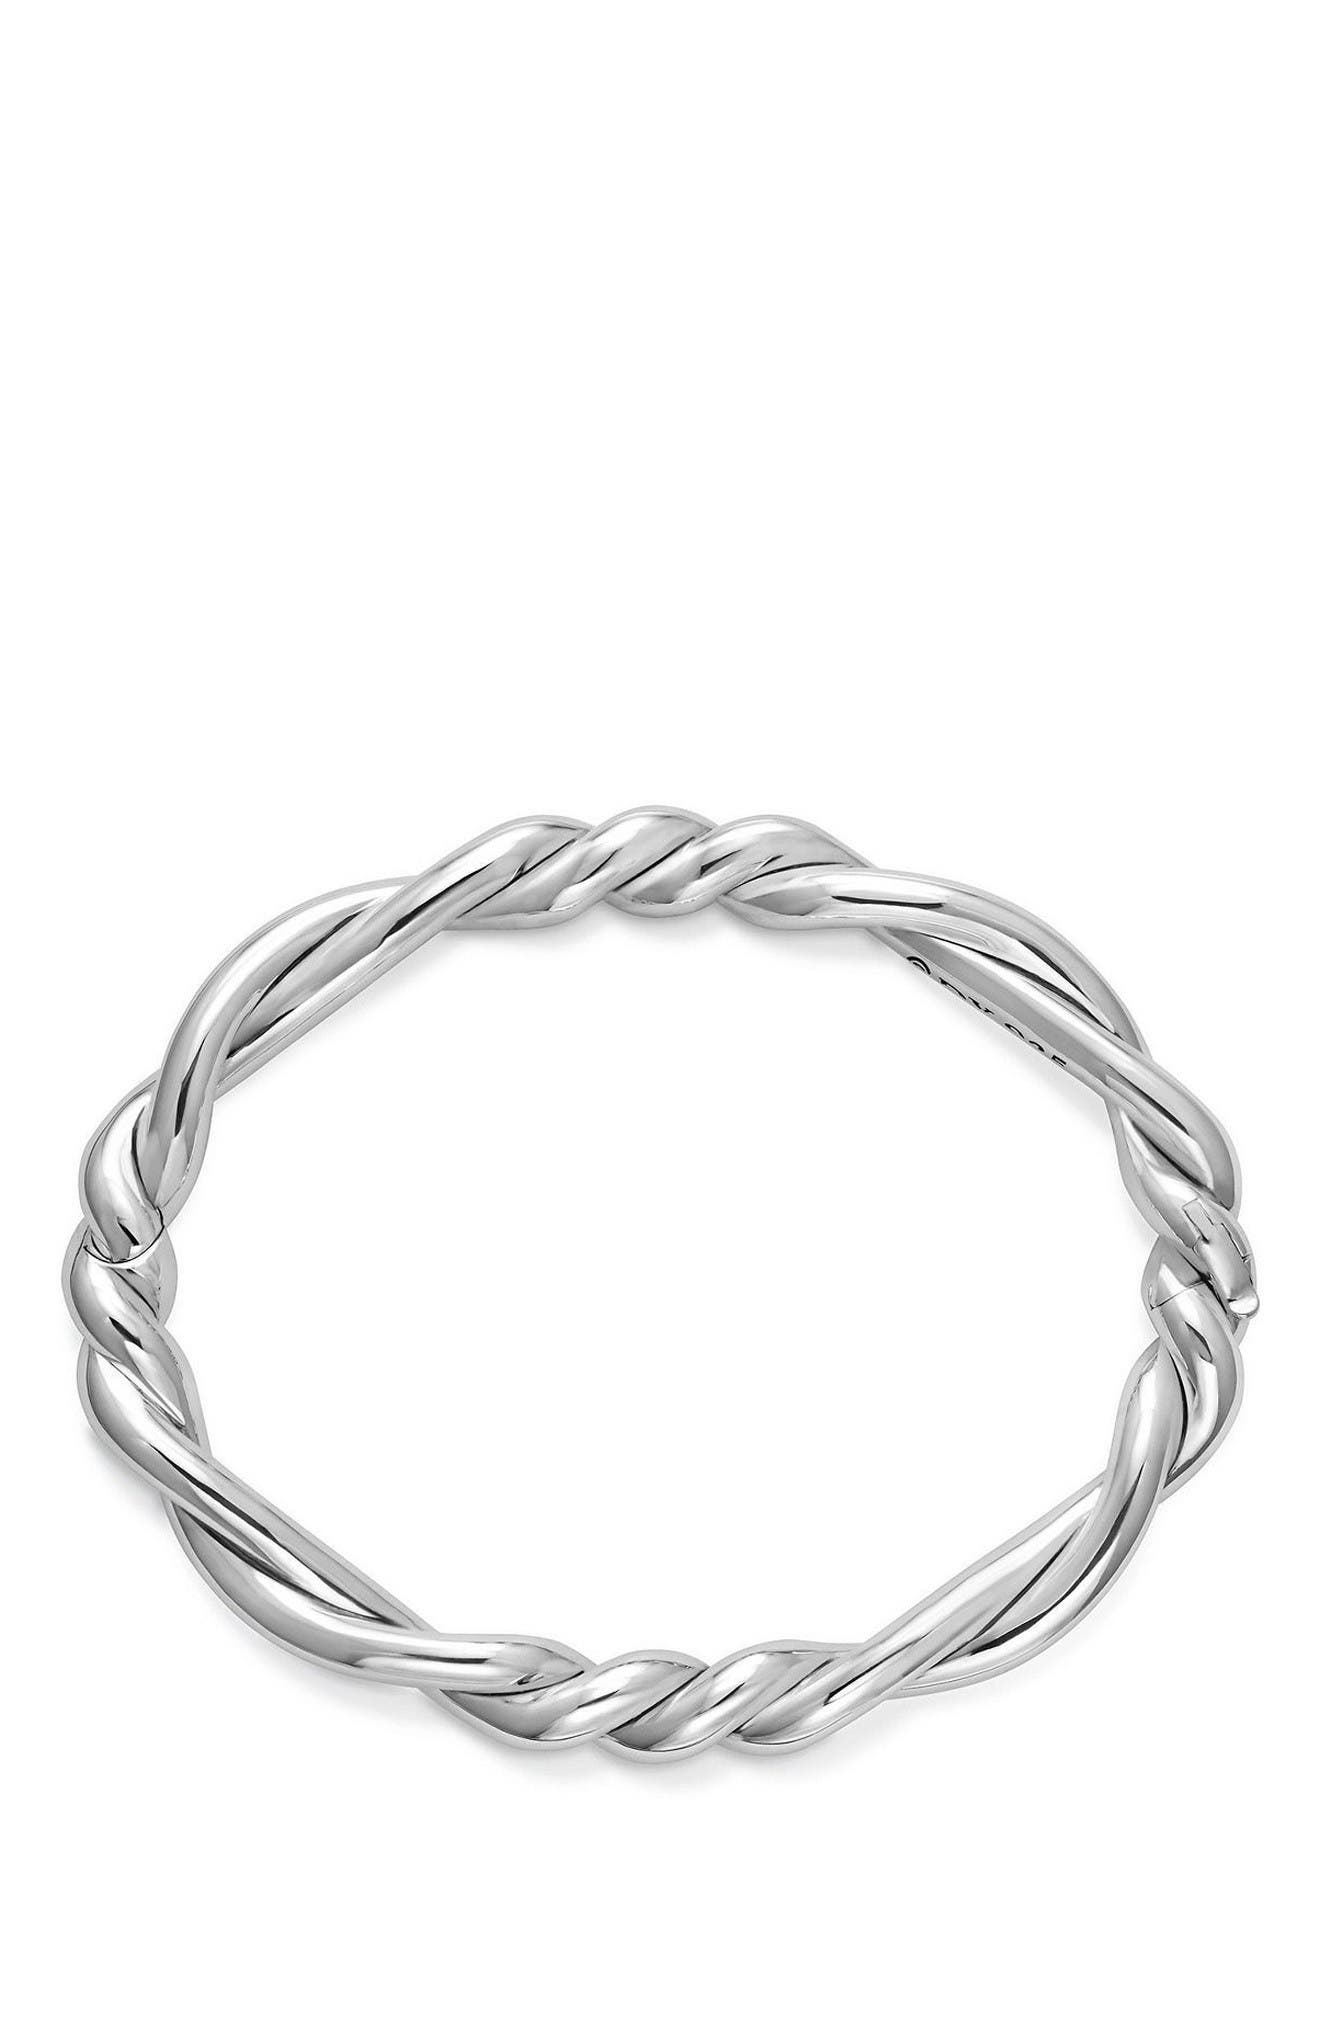 Alternate Image 2  - David Yurman Continuance Center Twist Bracelet